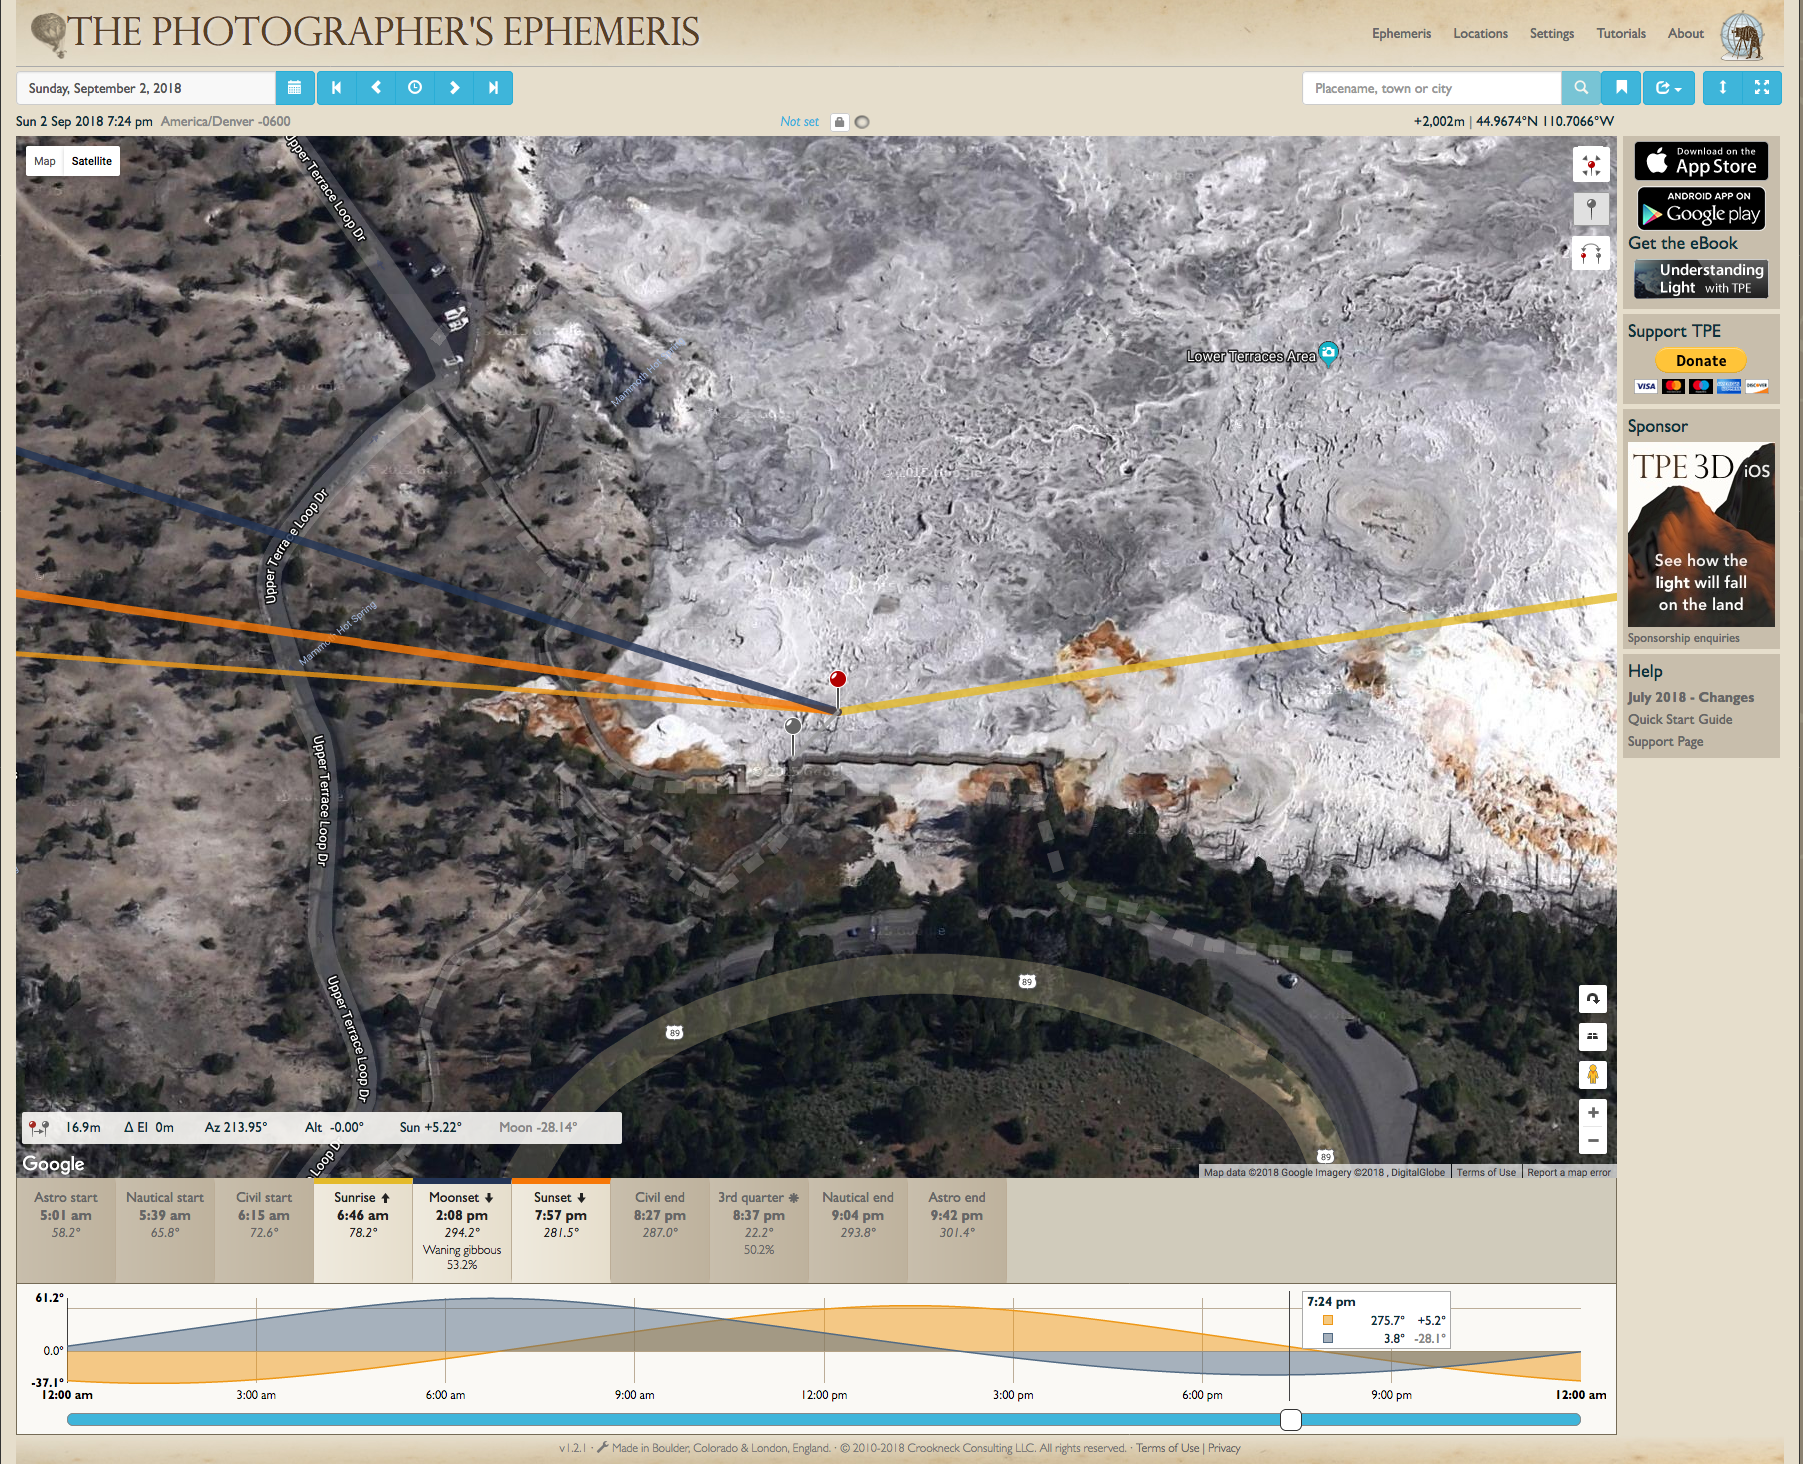 Mammoth Hot Springs, Lower Terraces, The Photographer's Ephemeris